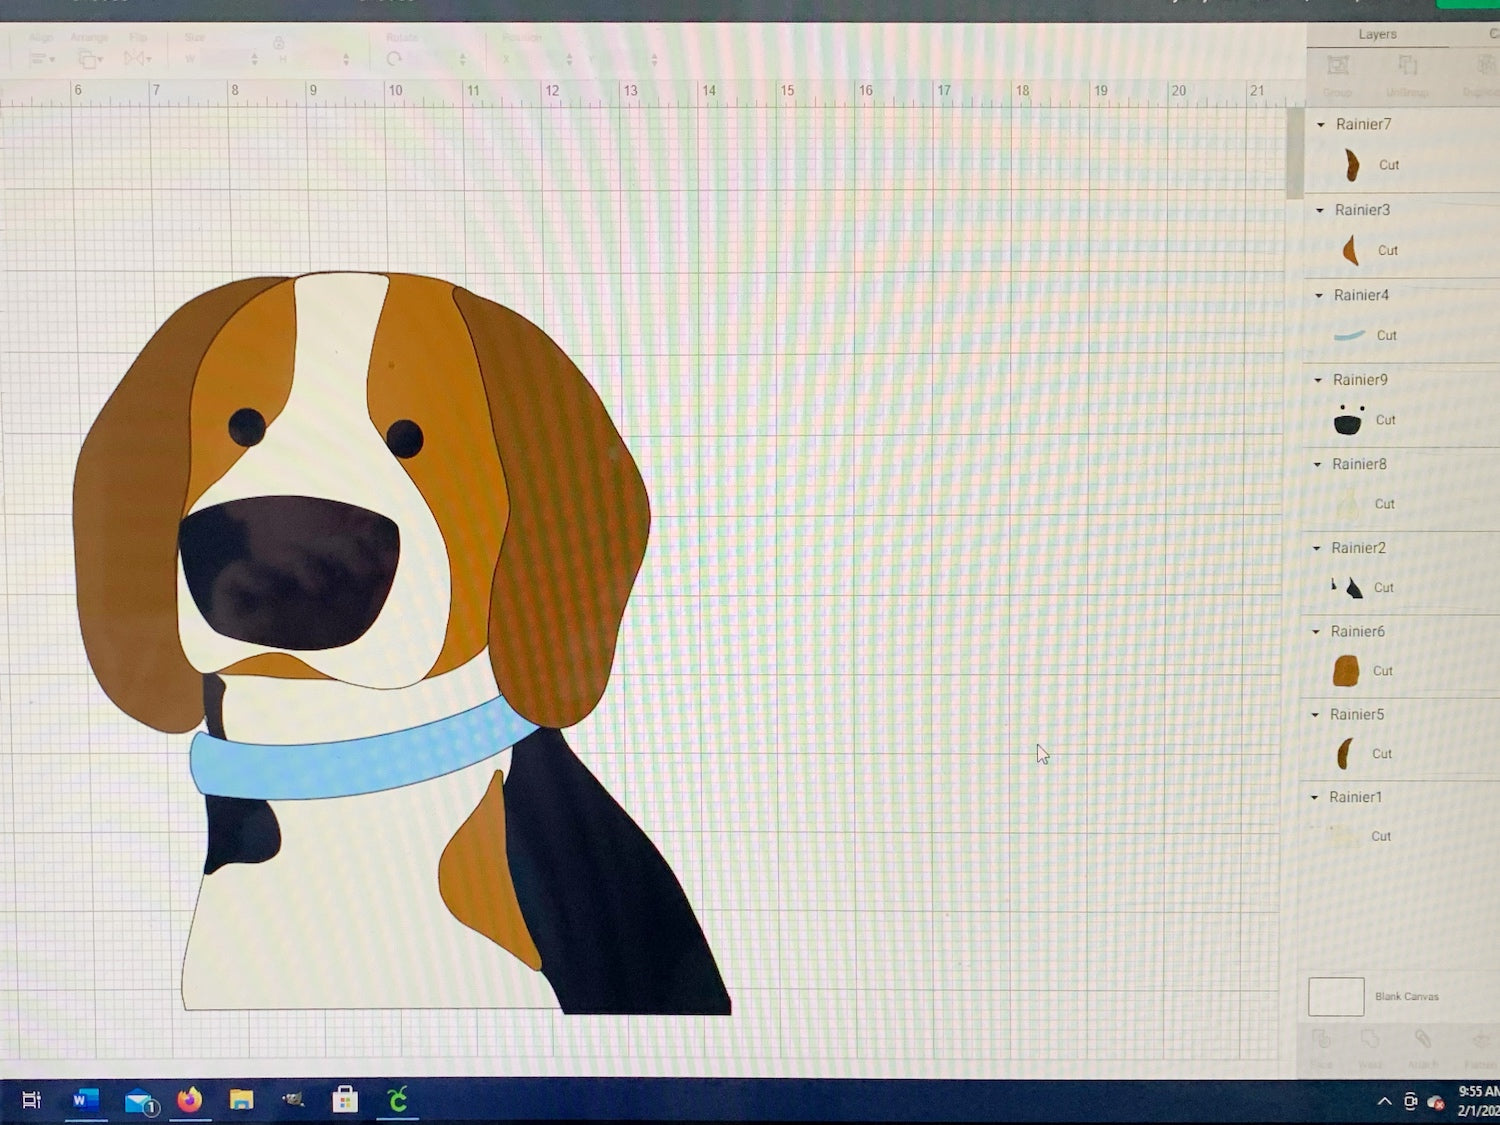 layers of dog portrait uploaded into Cricut Design Space